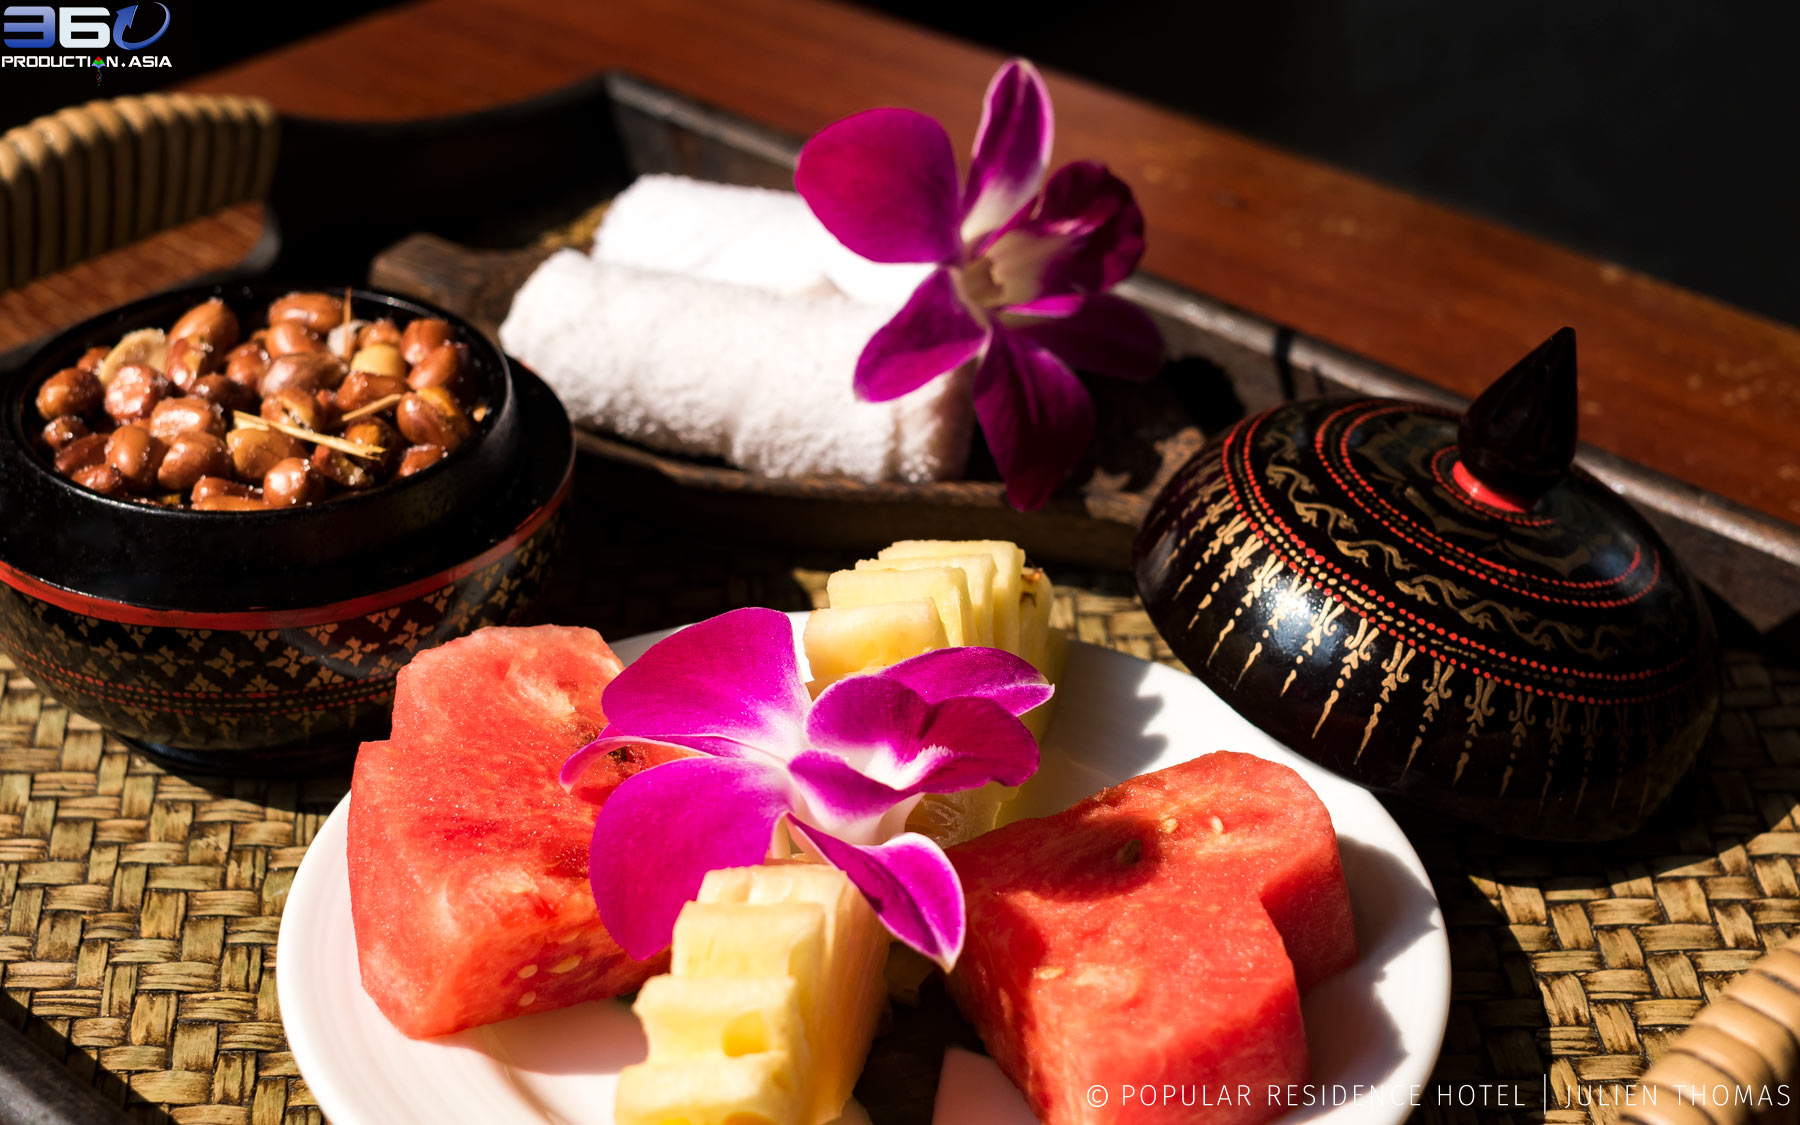 Welcoming snack platter with fresh cut fruits, roasted peanuts and refreshing towels for the travelers in holidays in Popular Residence Hotel, Siem Reap - Cambodia.